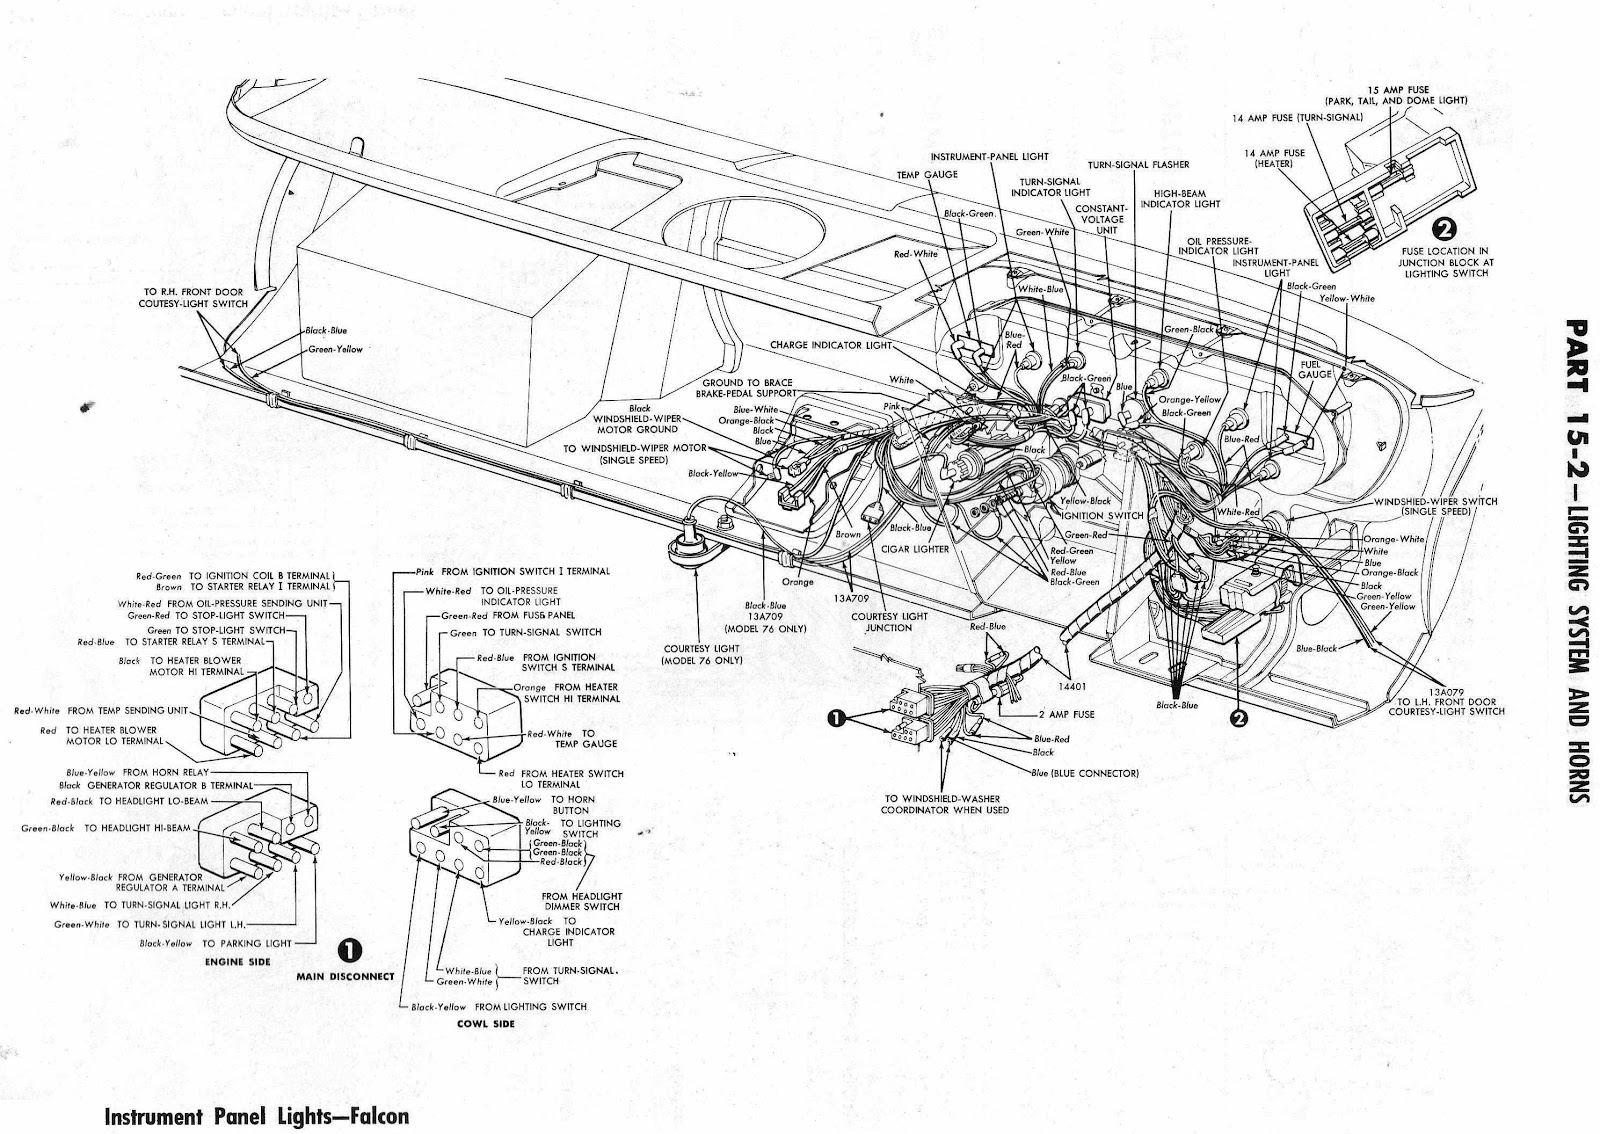 1964 falcon sprint wiring diagram